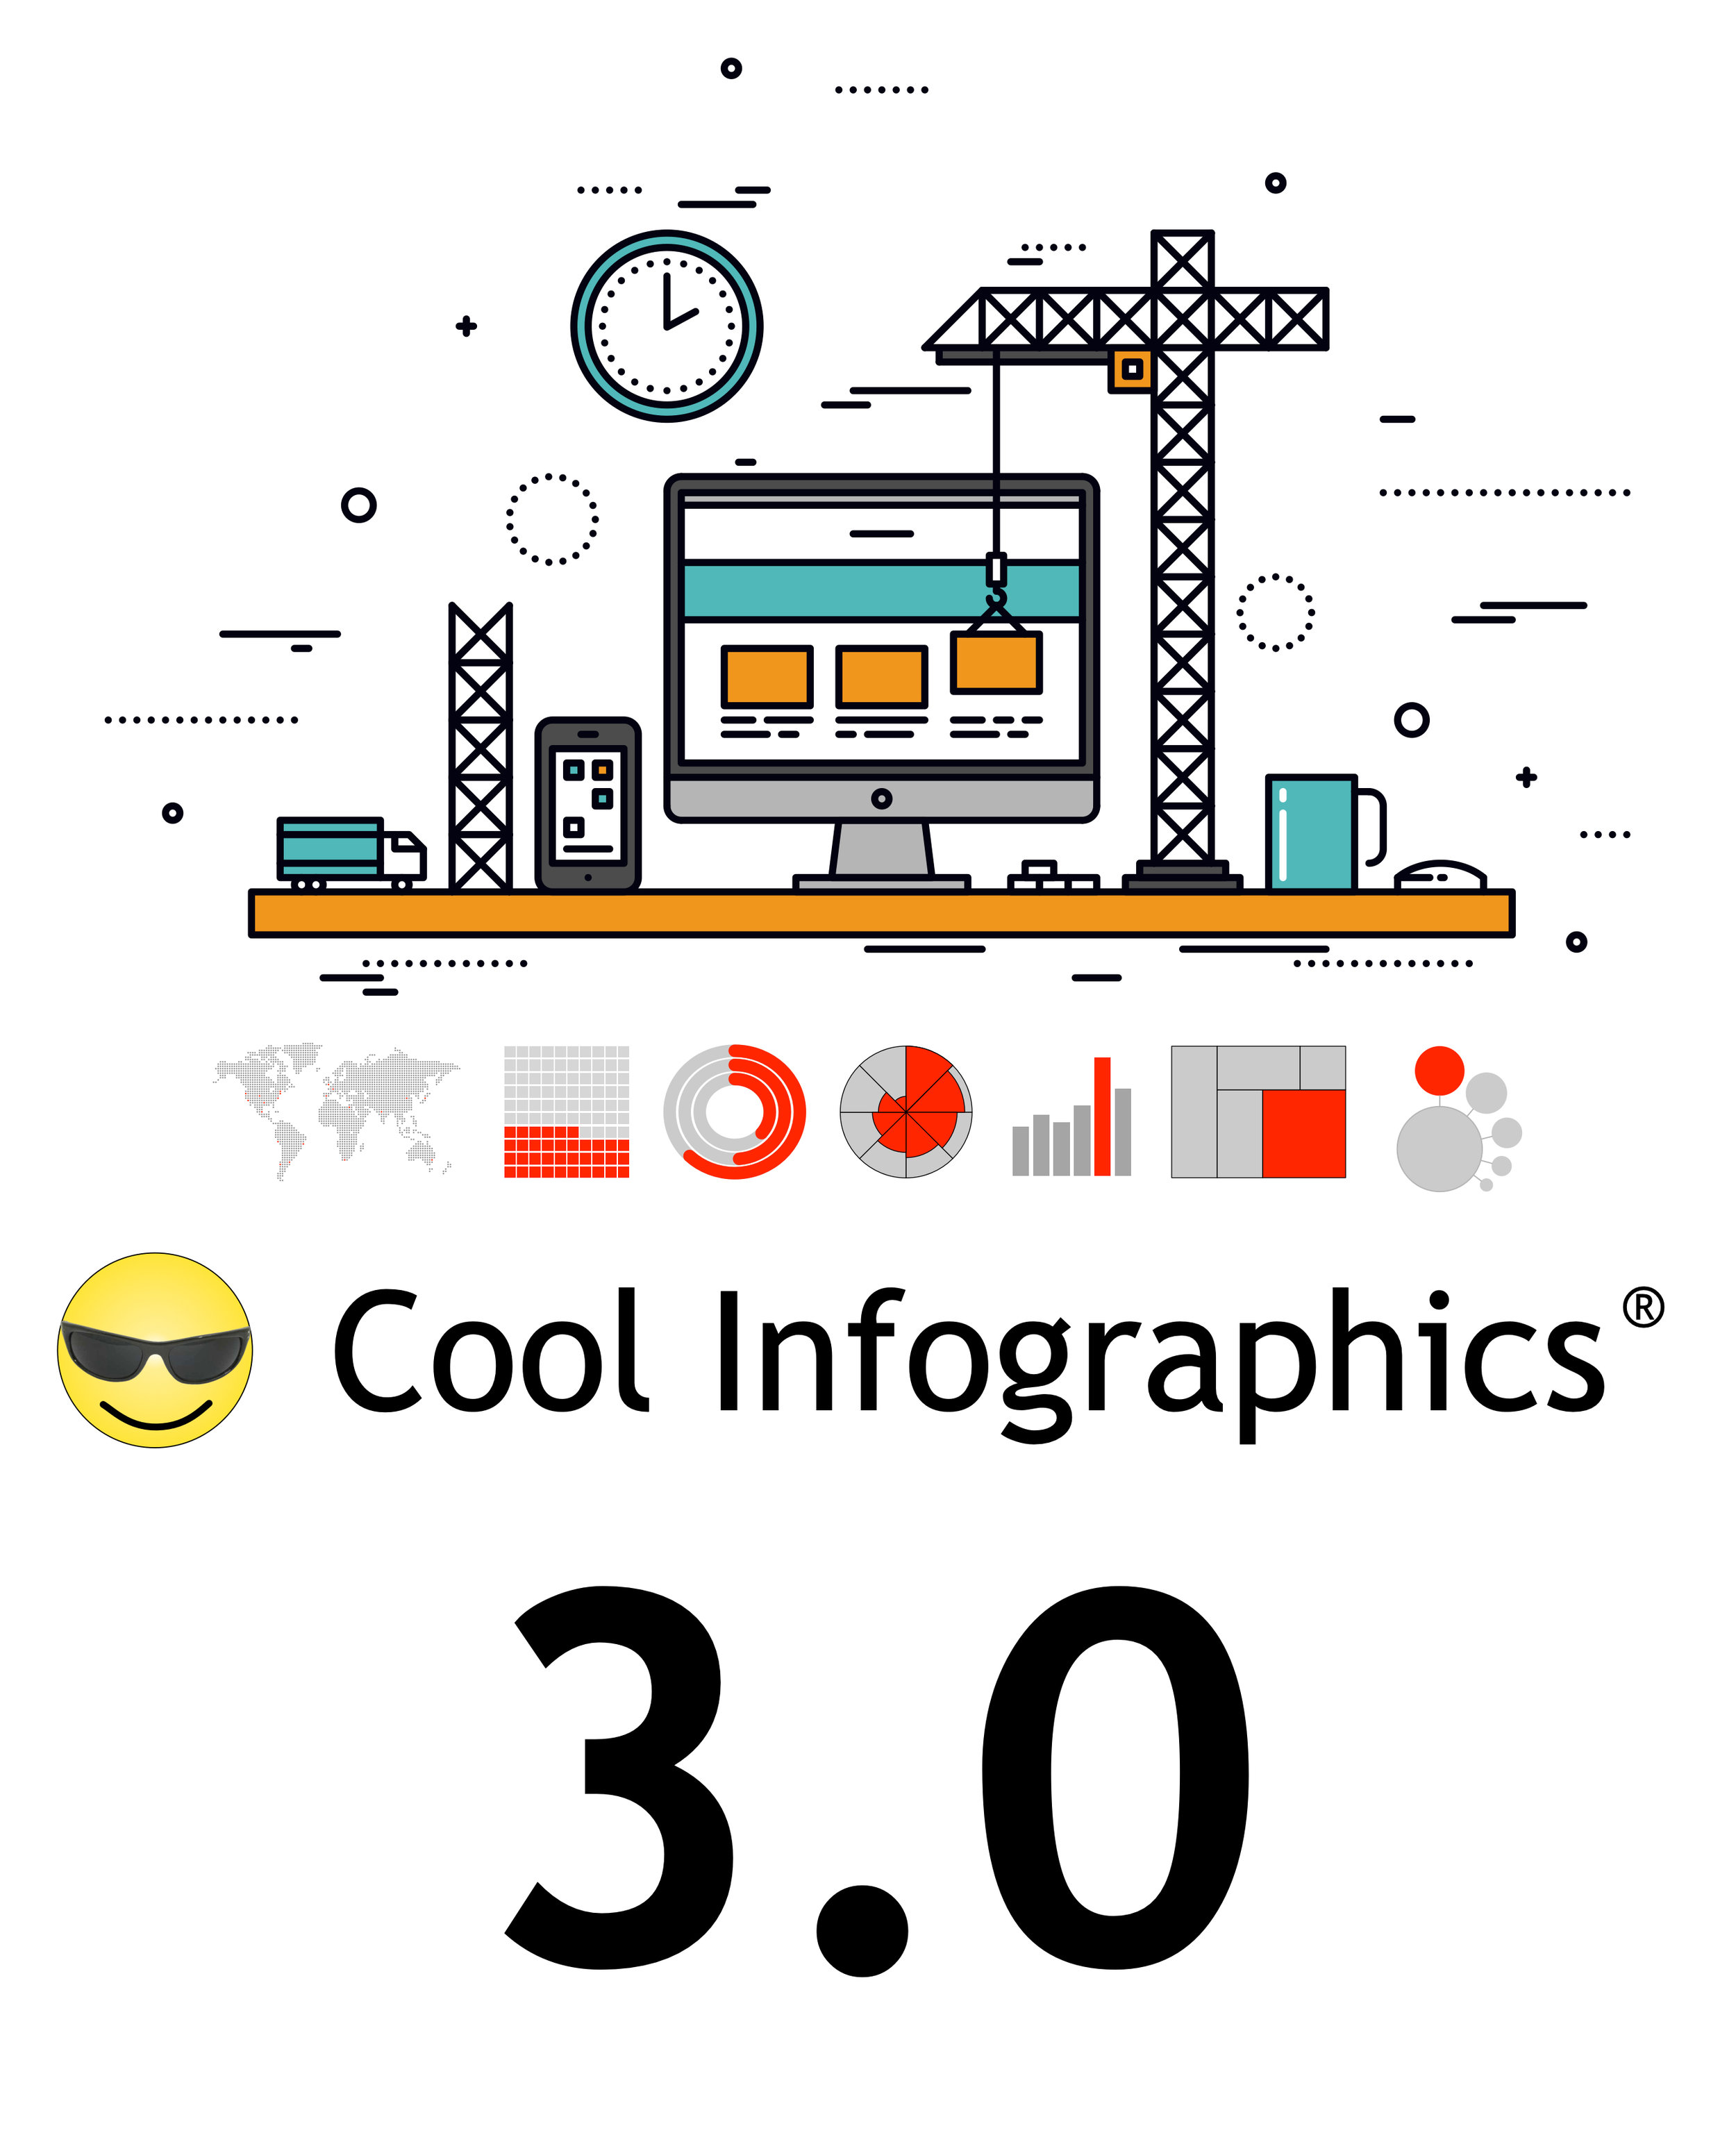 Welcome to Cool Infographics 3.0!